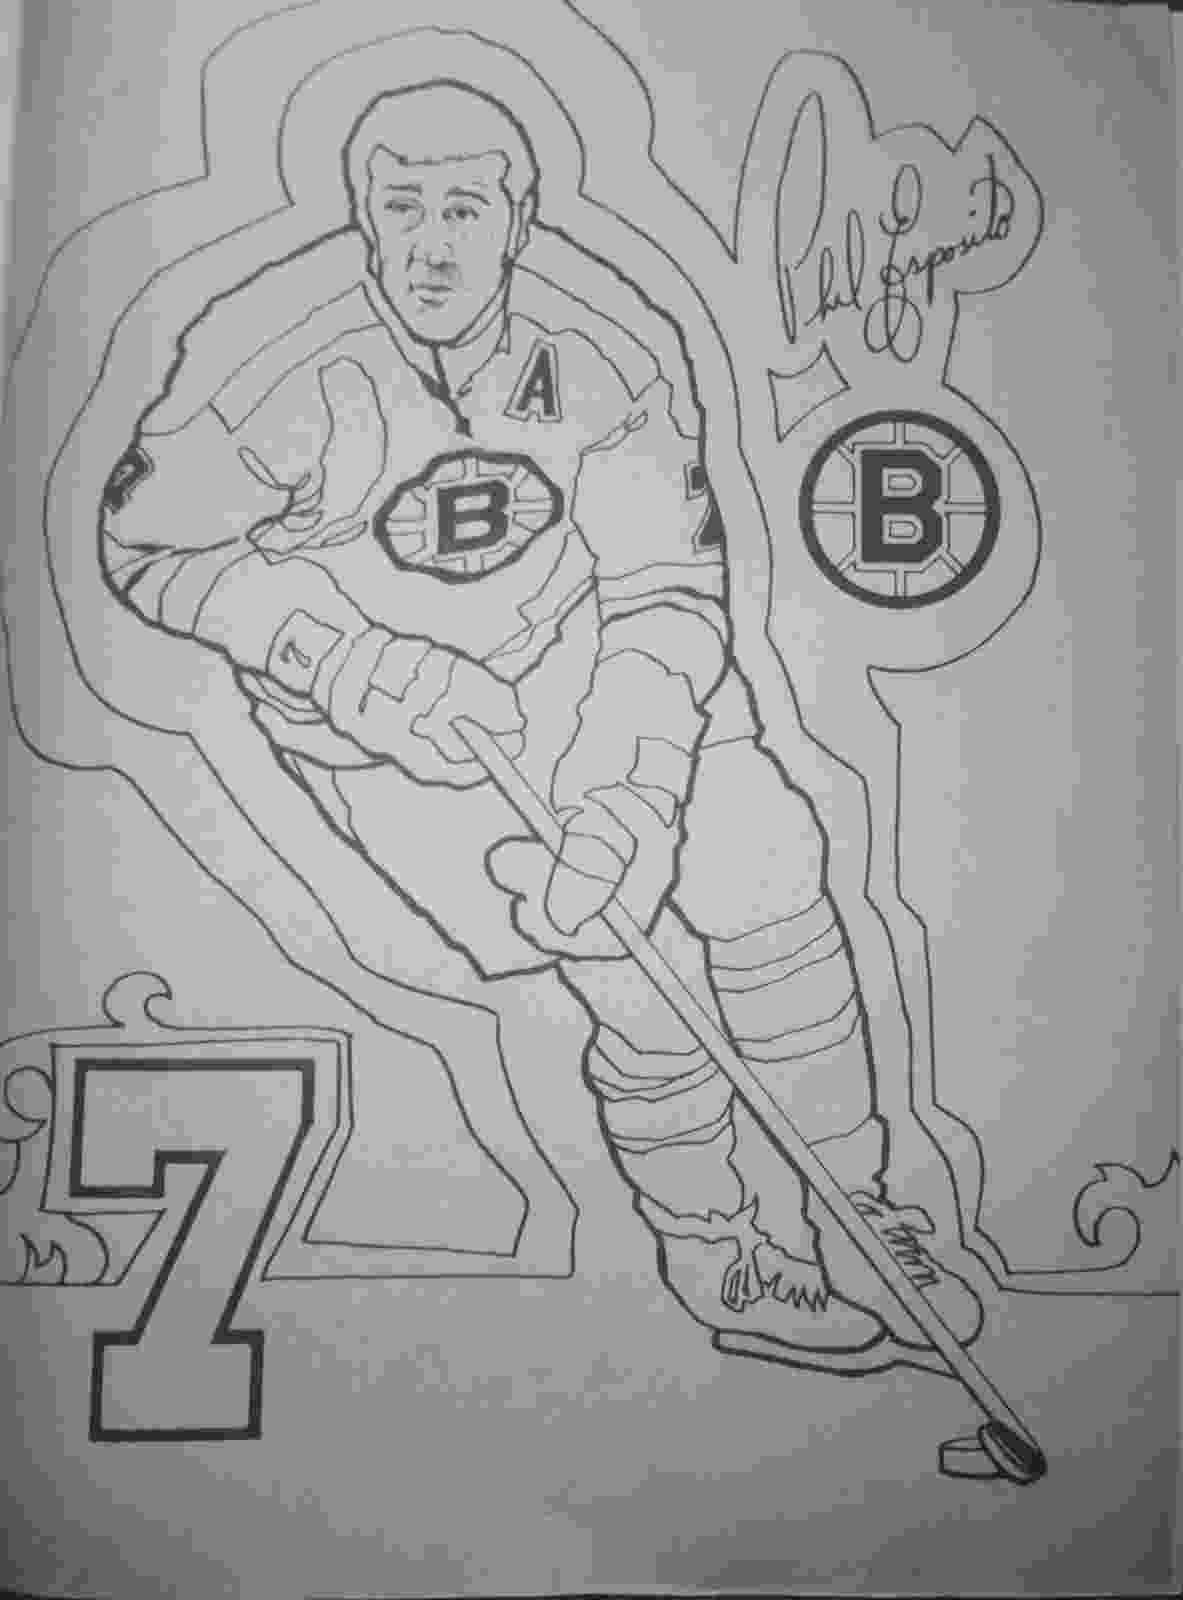 boston bruins coloring pages nitzy39s hockey den boston bruins 1972 coloring book pages boston coloring bruins